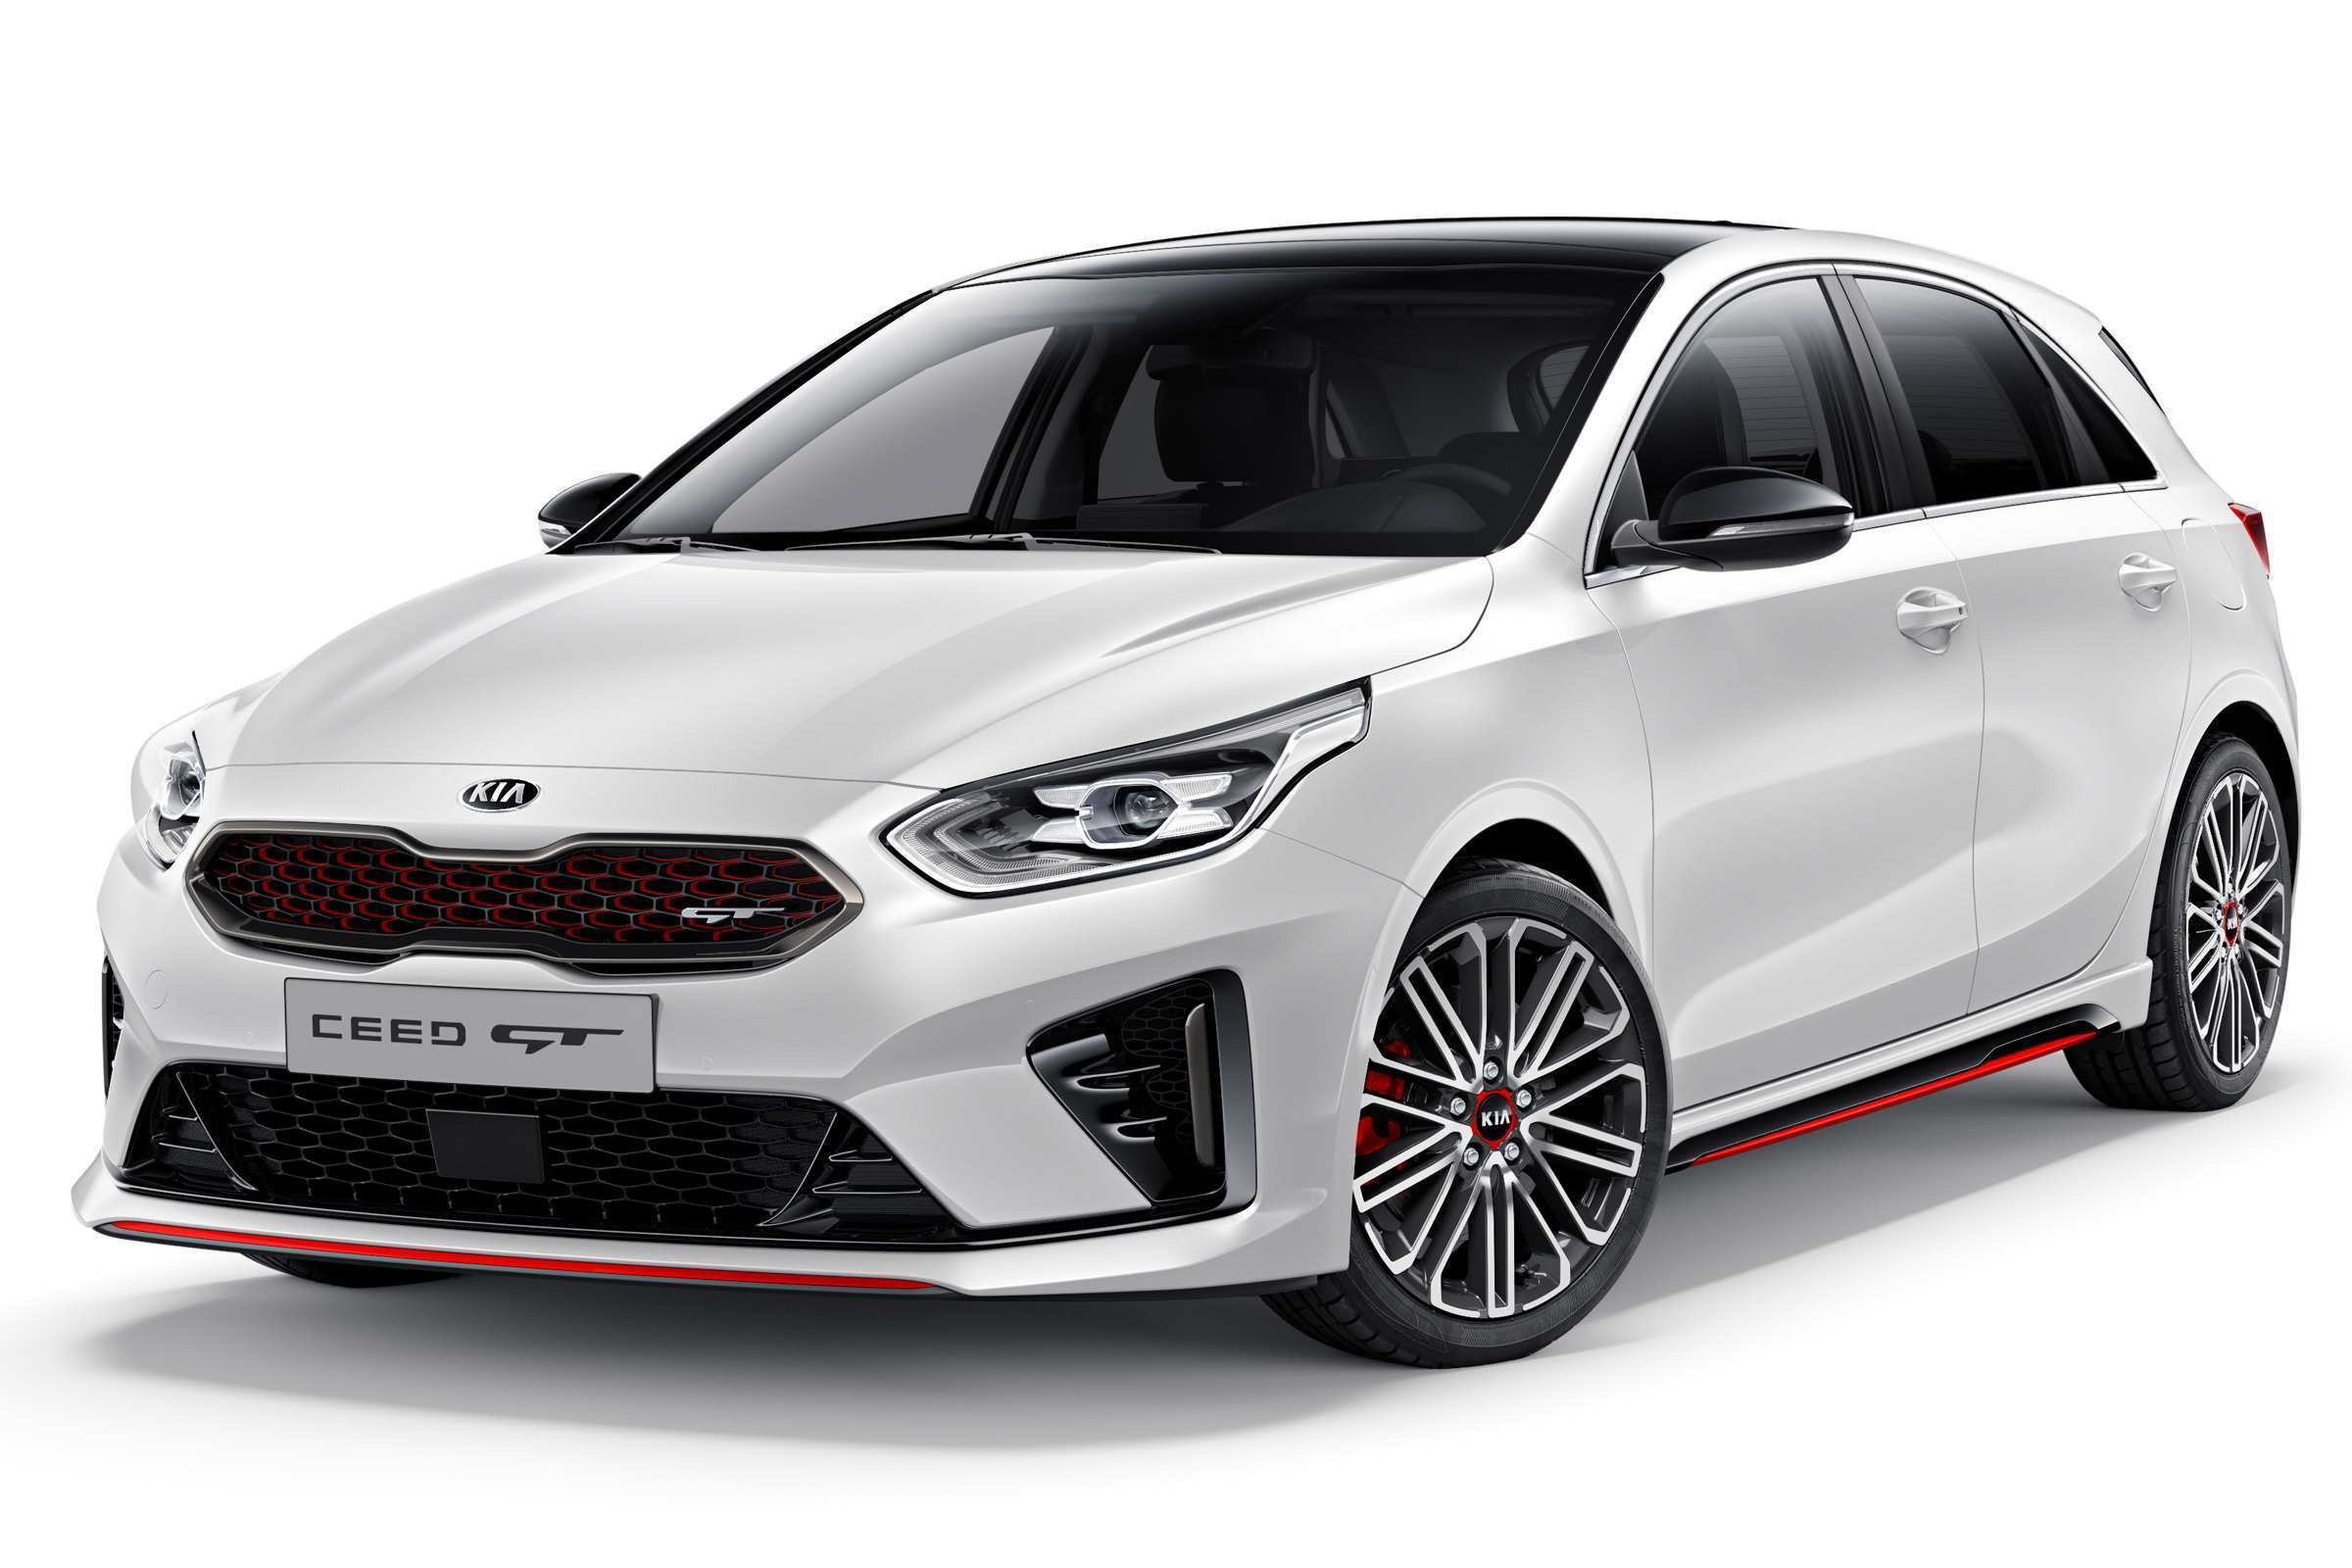 92 Concept of Kia Ceed Gt 2019 First Drive for Kia Ceed Gt 2019